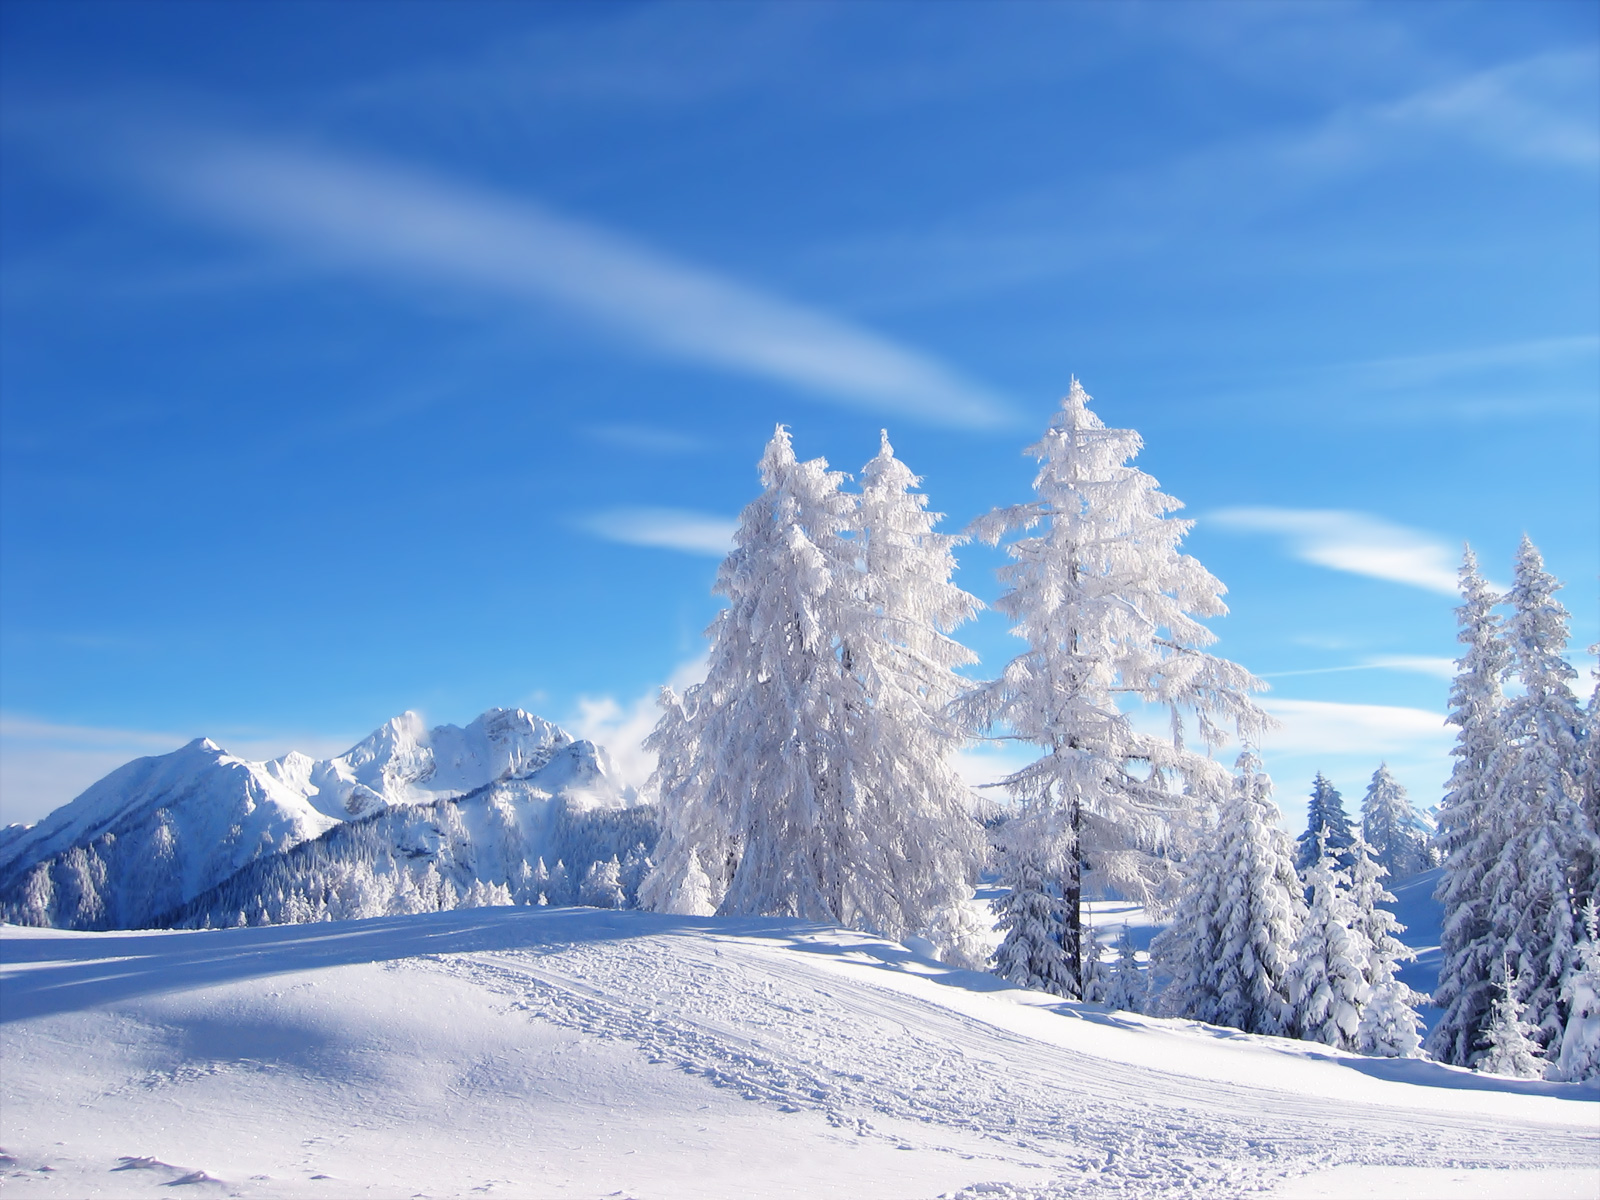 Winter Wallpaper HD For Desktop:Computer Wallpaper | Free Wallpaper ...